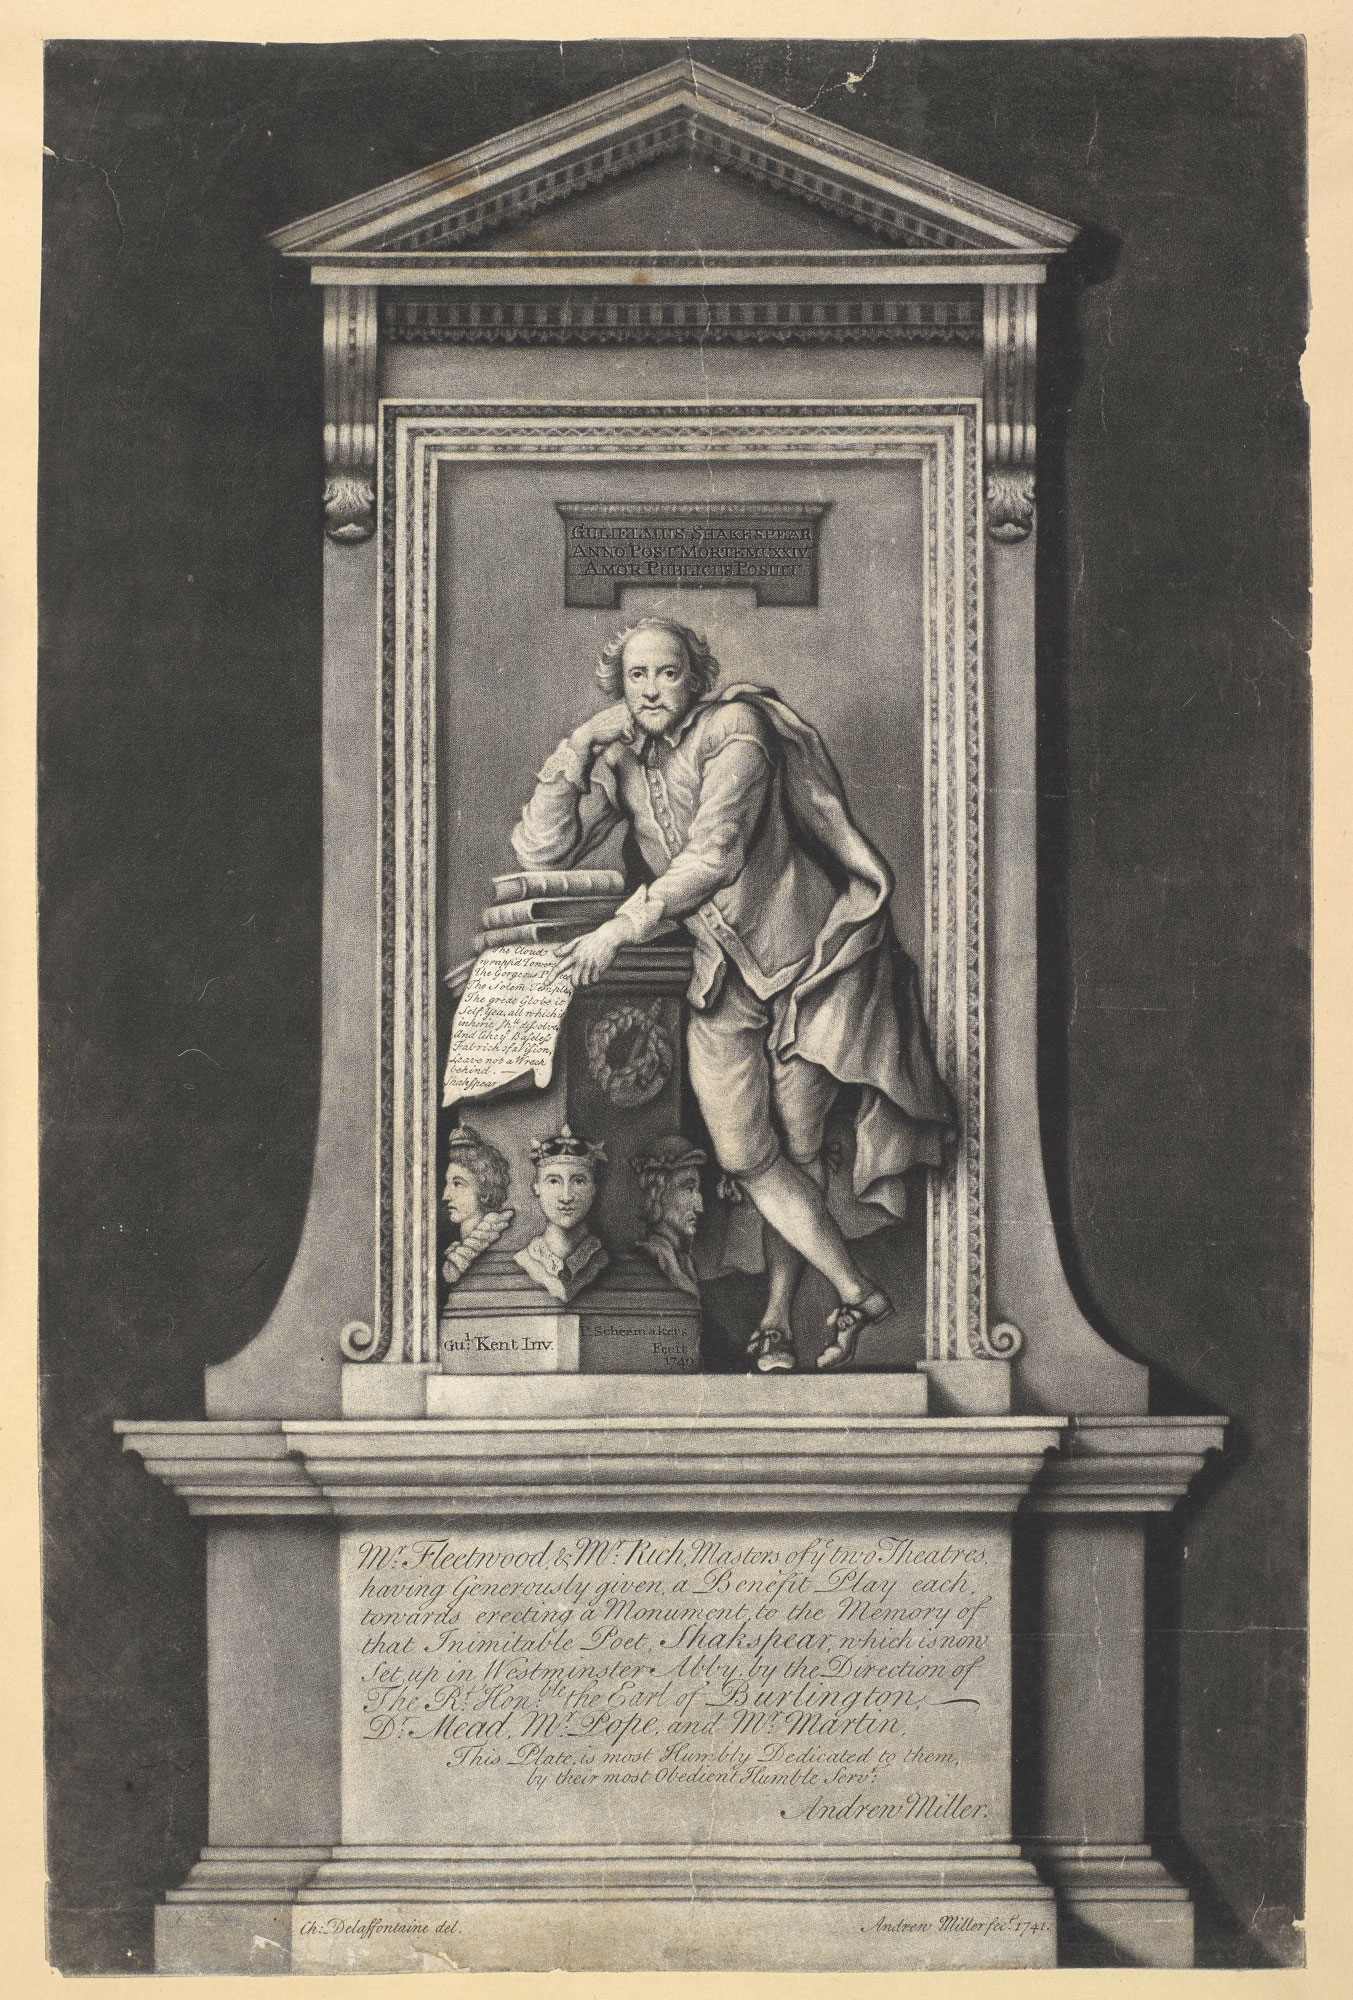 Print of the Shakespeare memorial in Westminster Abbey, 1741